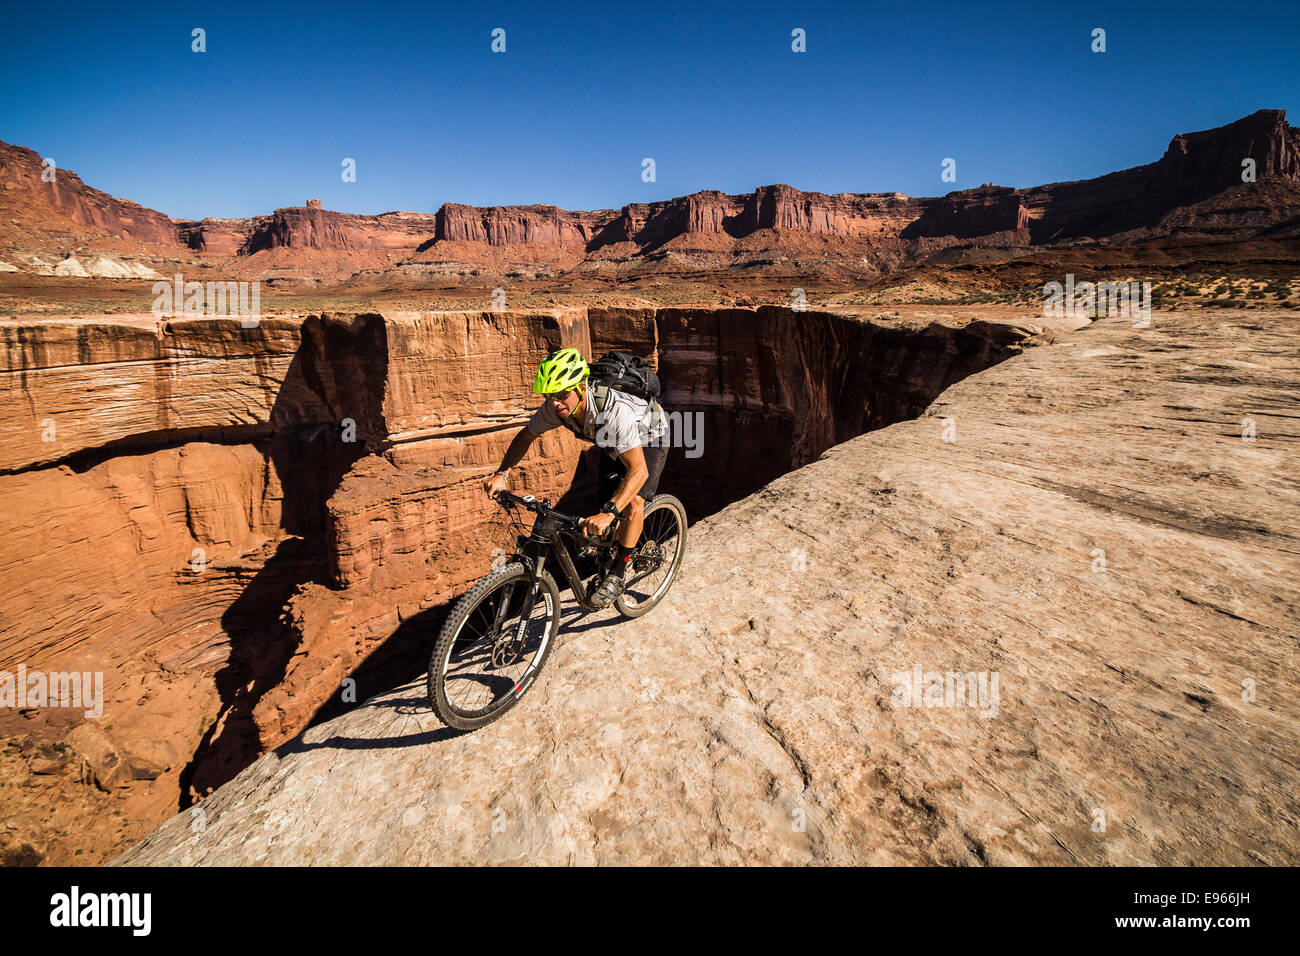 wes shirey mountain biking on the white rim trail, canyonlands